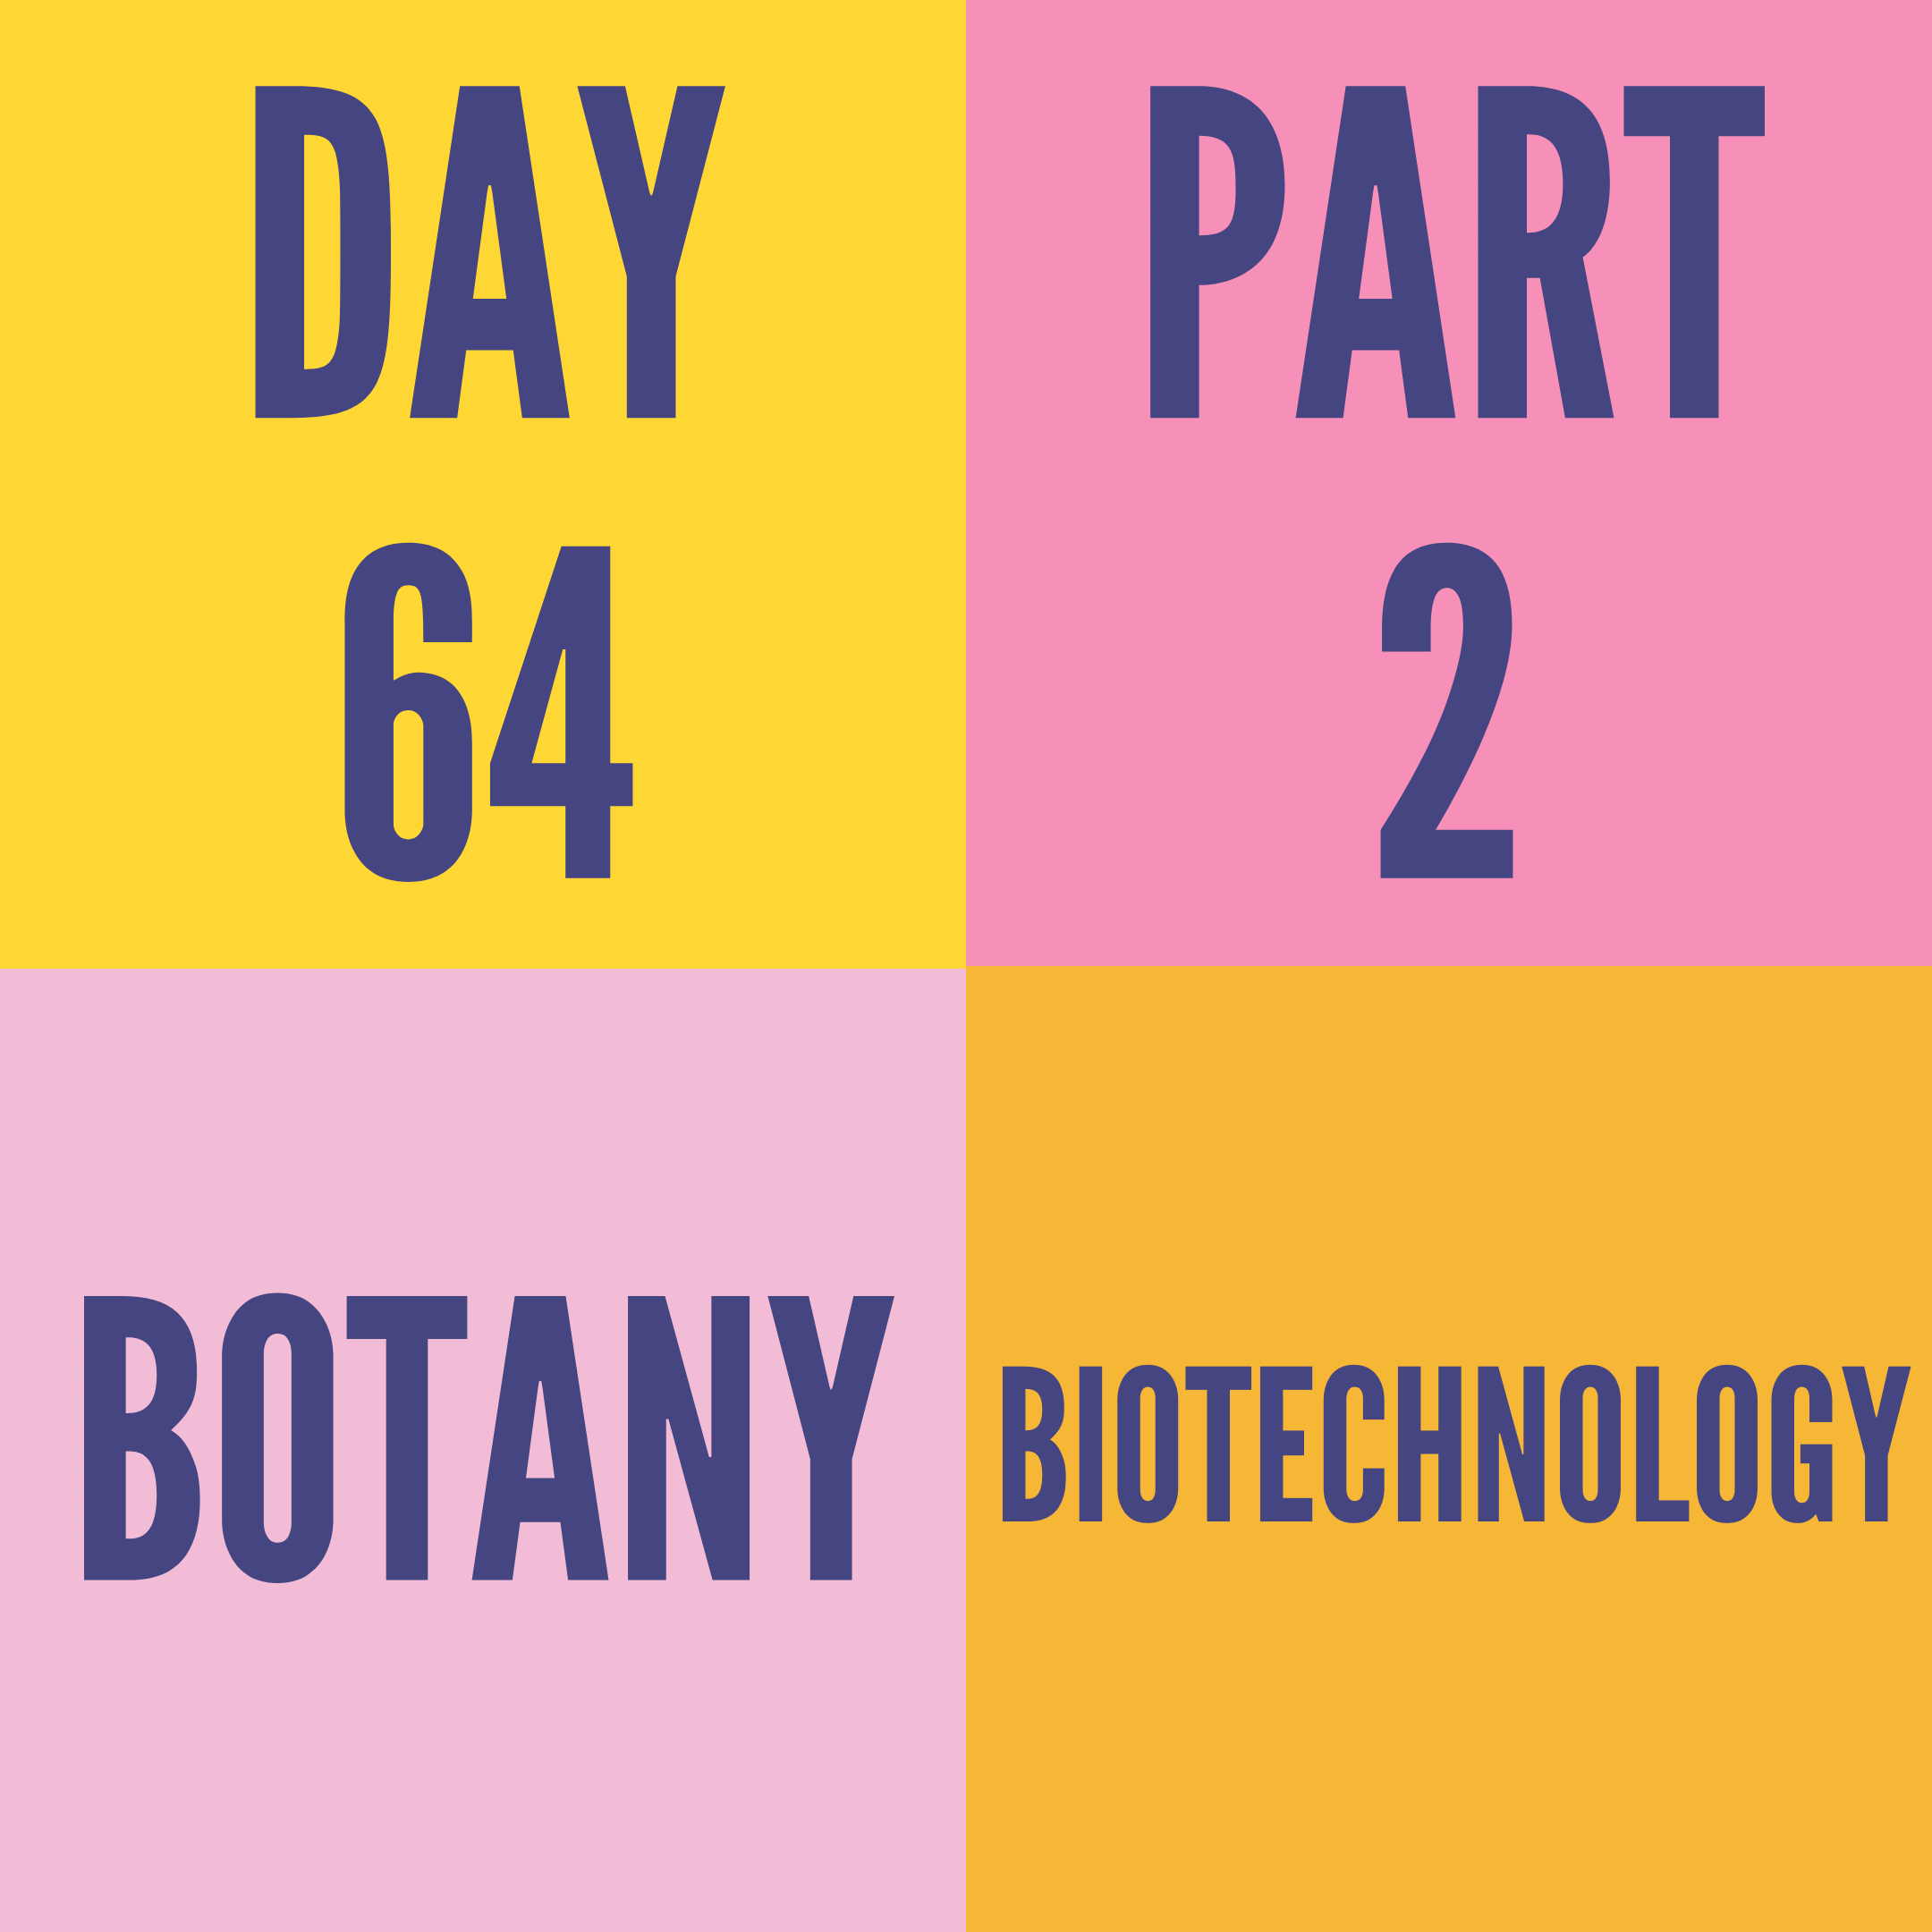 DAY-64 PART-2 BIOTECHNOLOGY